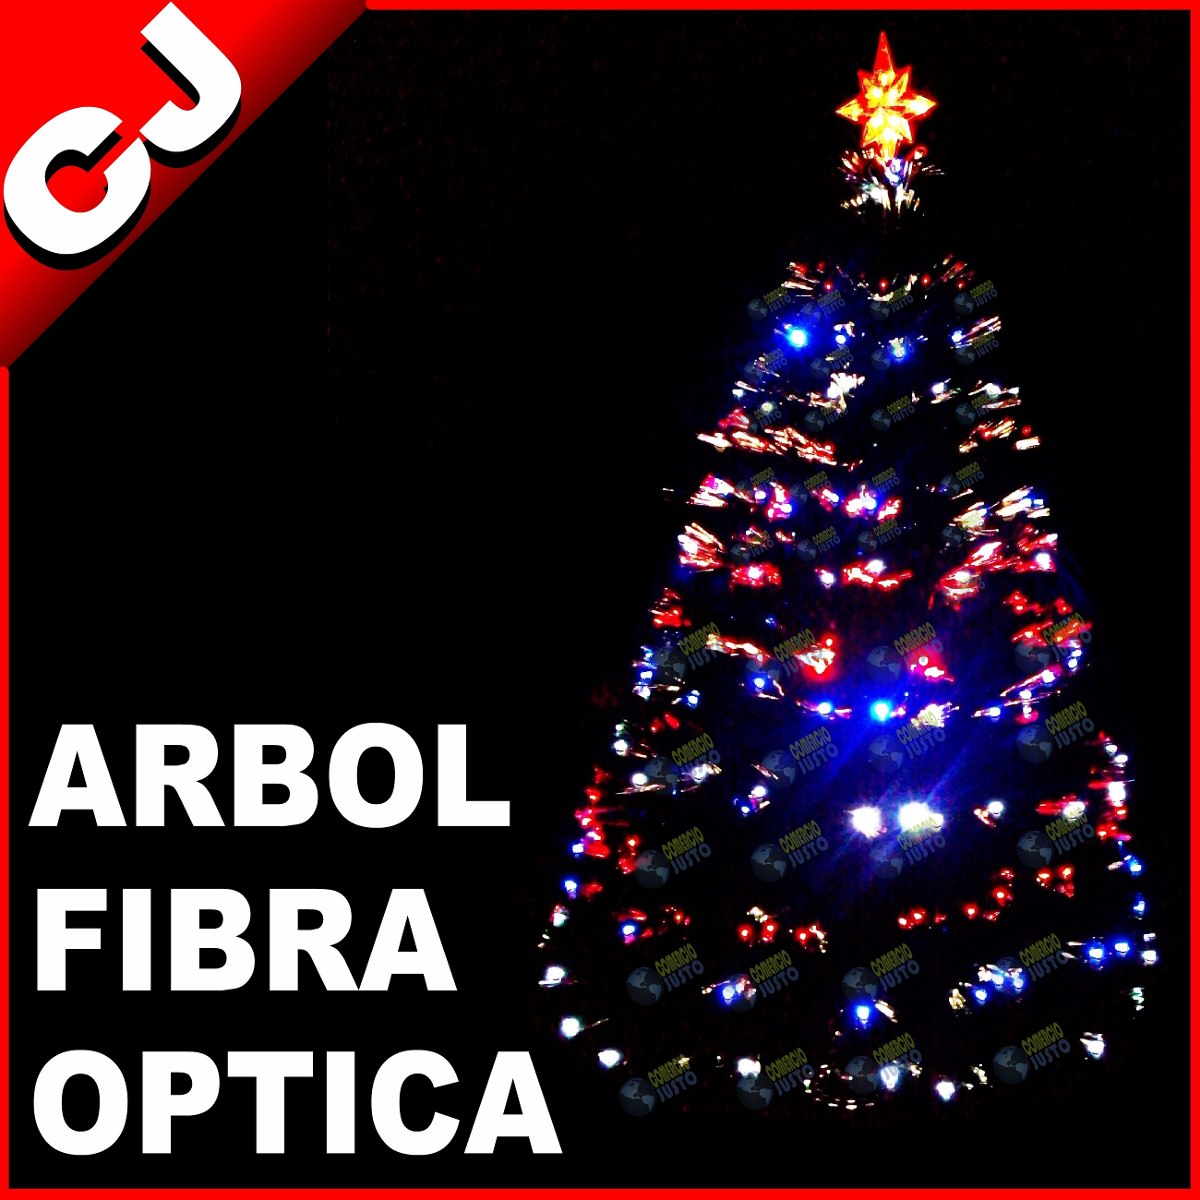 Arbol verde 210 fibra optica y luces led integradas - Arbol navidad con luces ...